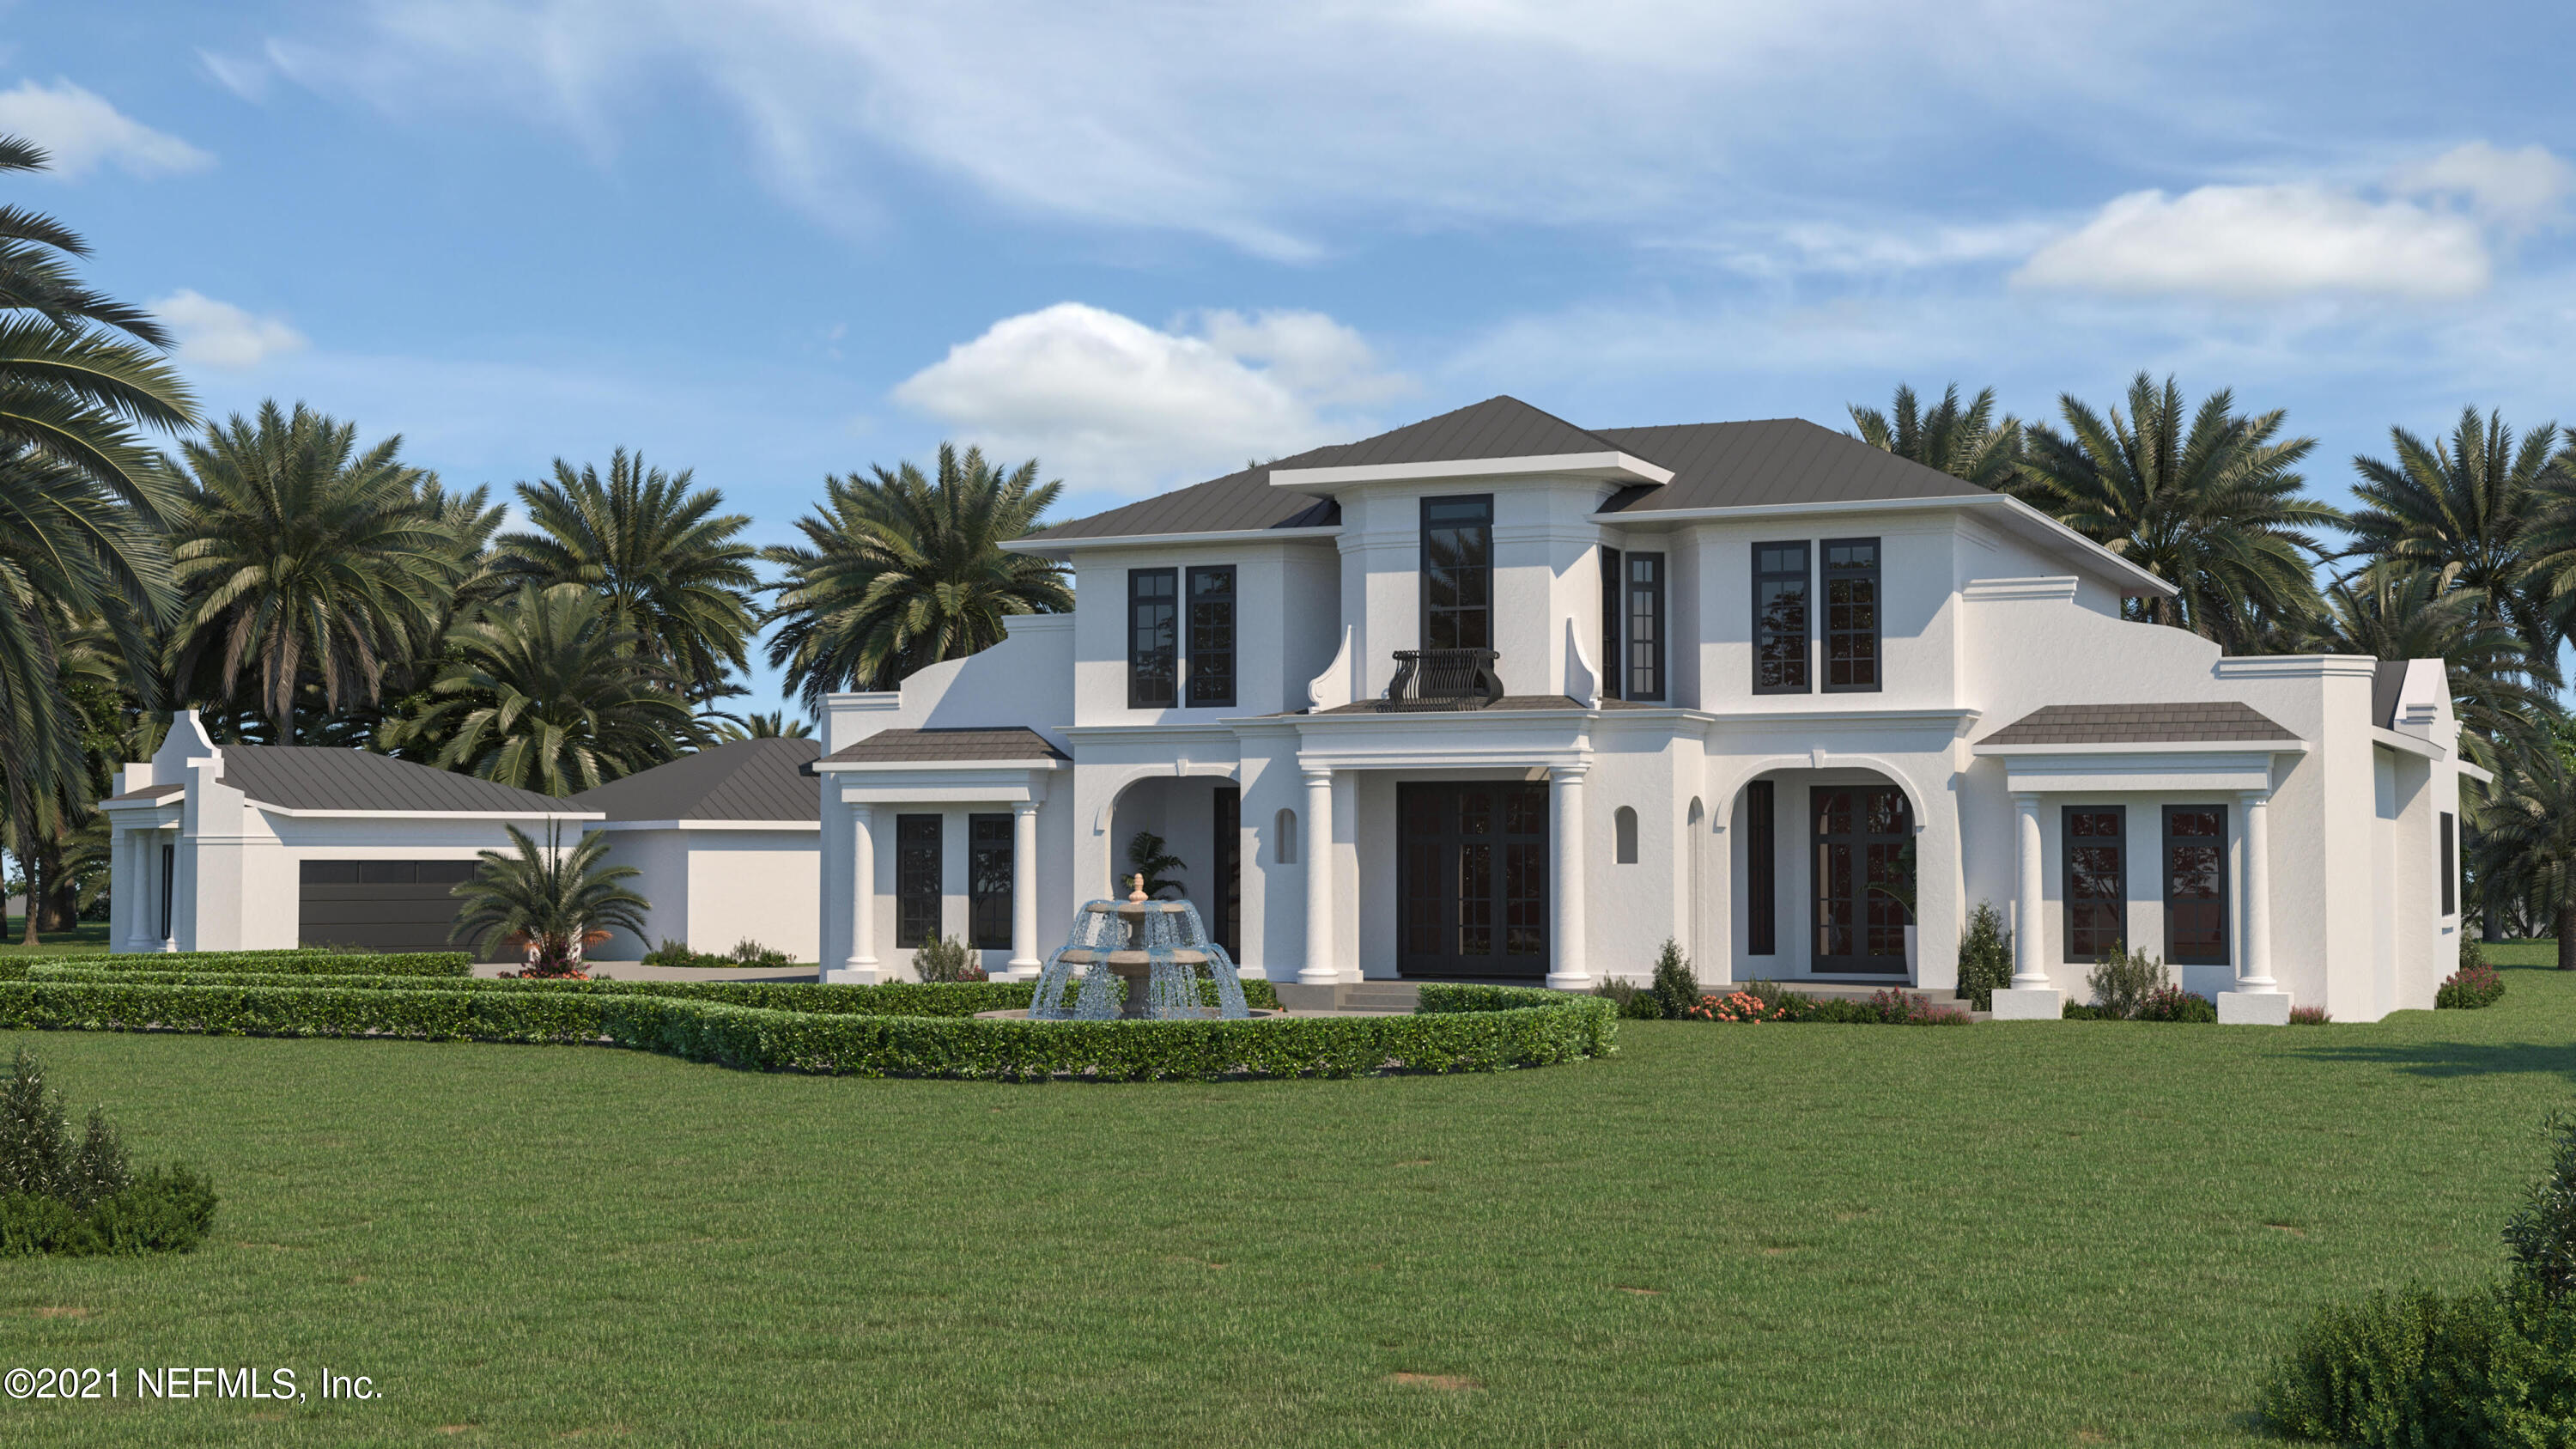 Awesome opportunity to build a brand new elegant estate home in the gated community of Queens Harbor. Designed to be built on this private, waterfront, 4 acre lot, this to-be constructed home boasts 7,879 sq ft of luxurious living, including a beautifully appointed guest house. The plan includes an elegant covered entry, grand foyer, magnificent staircase, music hall, coat room, great room, breakfast bar, wine bar, chef's kitchen, and formal dining area. The master suite will feature elegant bathrooms, custom closets and incredible water views. Outdoor living areas will feature multiple covered spaces and a gorgeous pool. This price includes poured concrete block construction with funds allowed for helical piling and grade beam foundation (if required). See more... These plans also include a second floor with a junior master suite, private office with bar & separate conference room, gallery area, loft and an additional bedroom & bathroom. Bring your own interior designer, or work with the builder's to take advantage of $800k in allowances included for owner selections/finishes. Pricing includes a $200k allowance for pool or additional hardscape and landscaping. Included in the budget are roofing upgrades, luxury clad windows and 12ft ceilings. Build price and availability is subject to final wetlands survey, owner selections, permitted design, verification of funds, and permit issuance by all authors holding jurisdiction. This property is an out parcel and not subject to Queens Harbor's fees and HOA rules/restrictions. This rendering is just an example of what could be built on this beautiful 4 acre lot. The lot is also for sale separately. See MLS #:1104540.